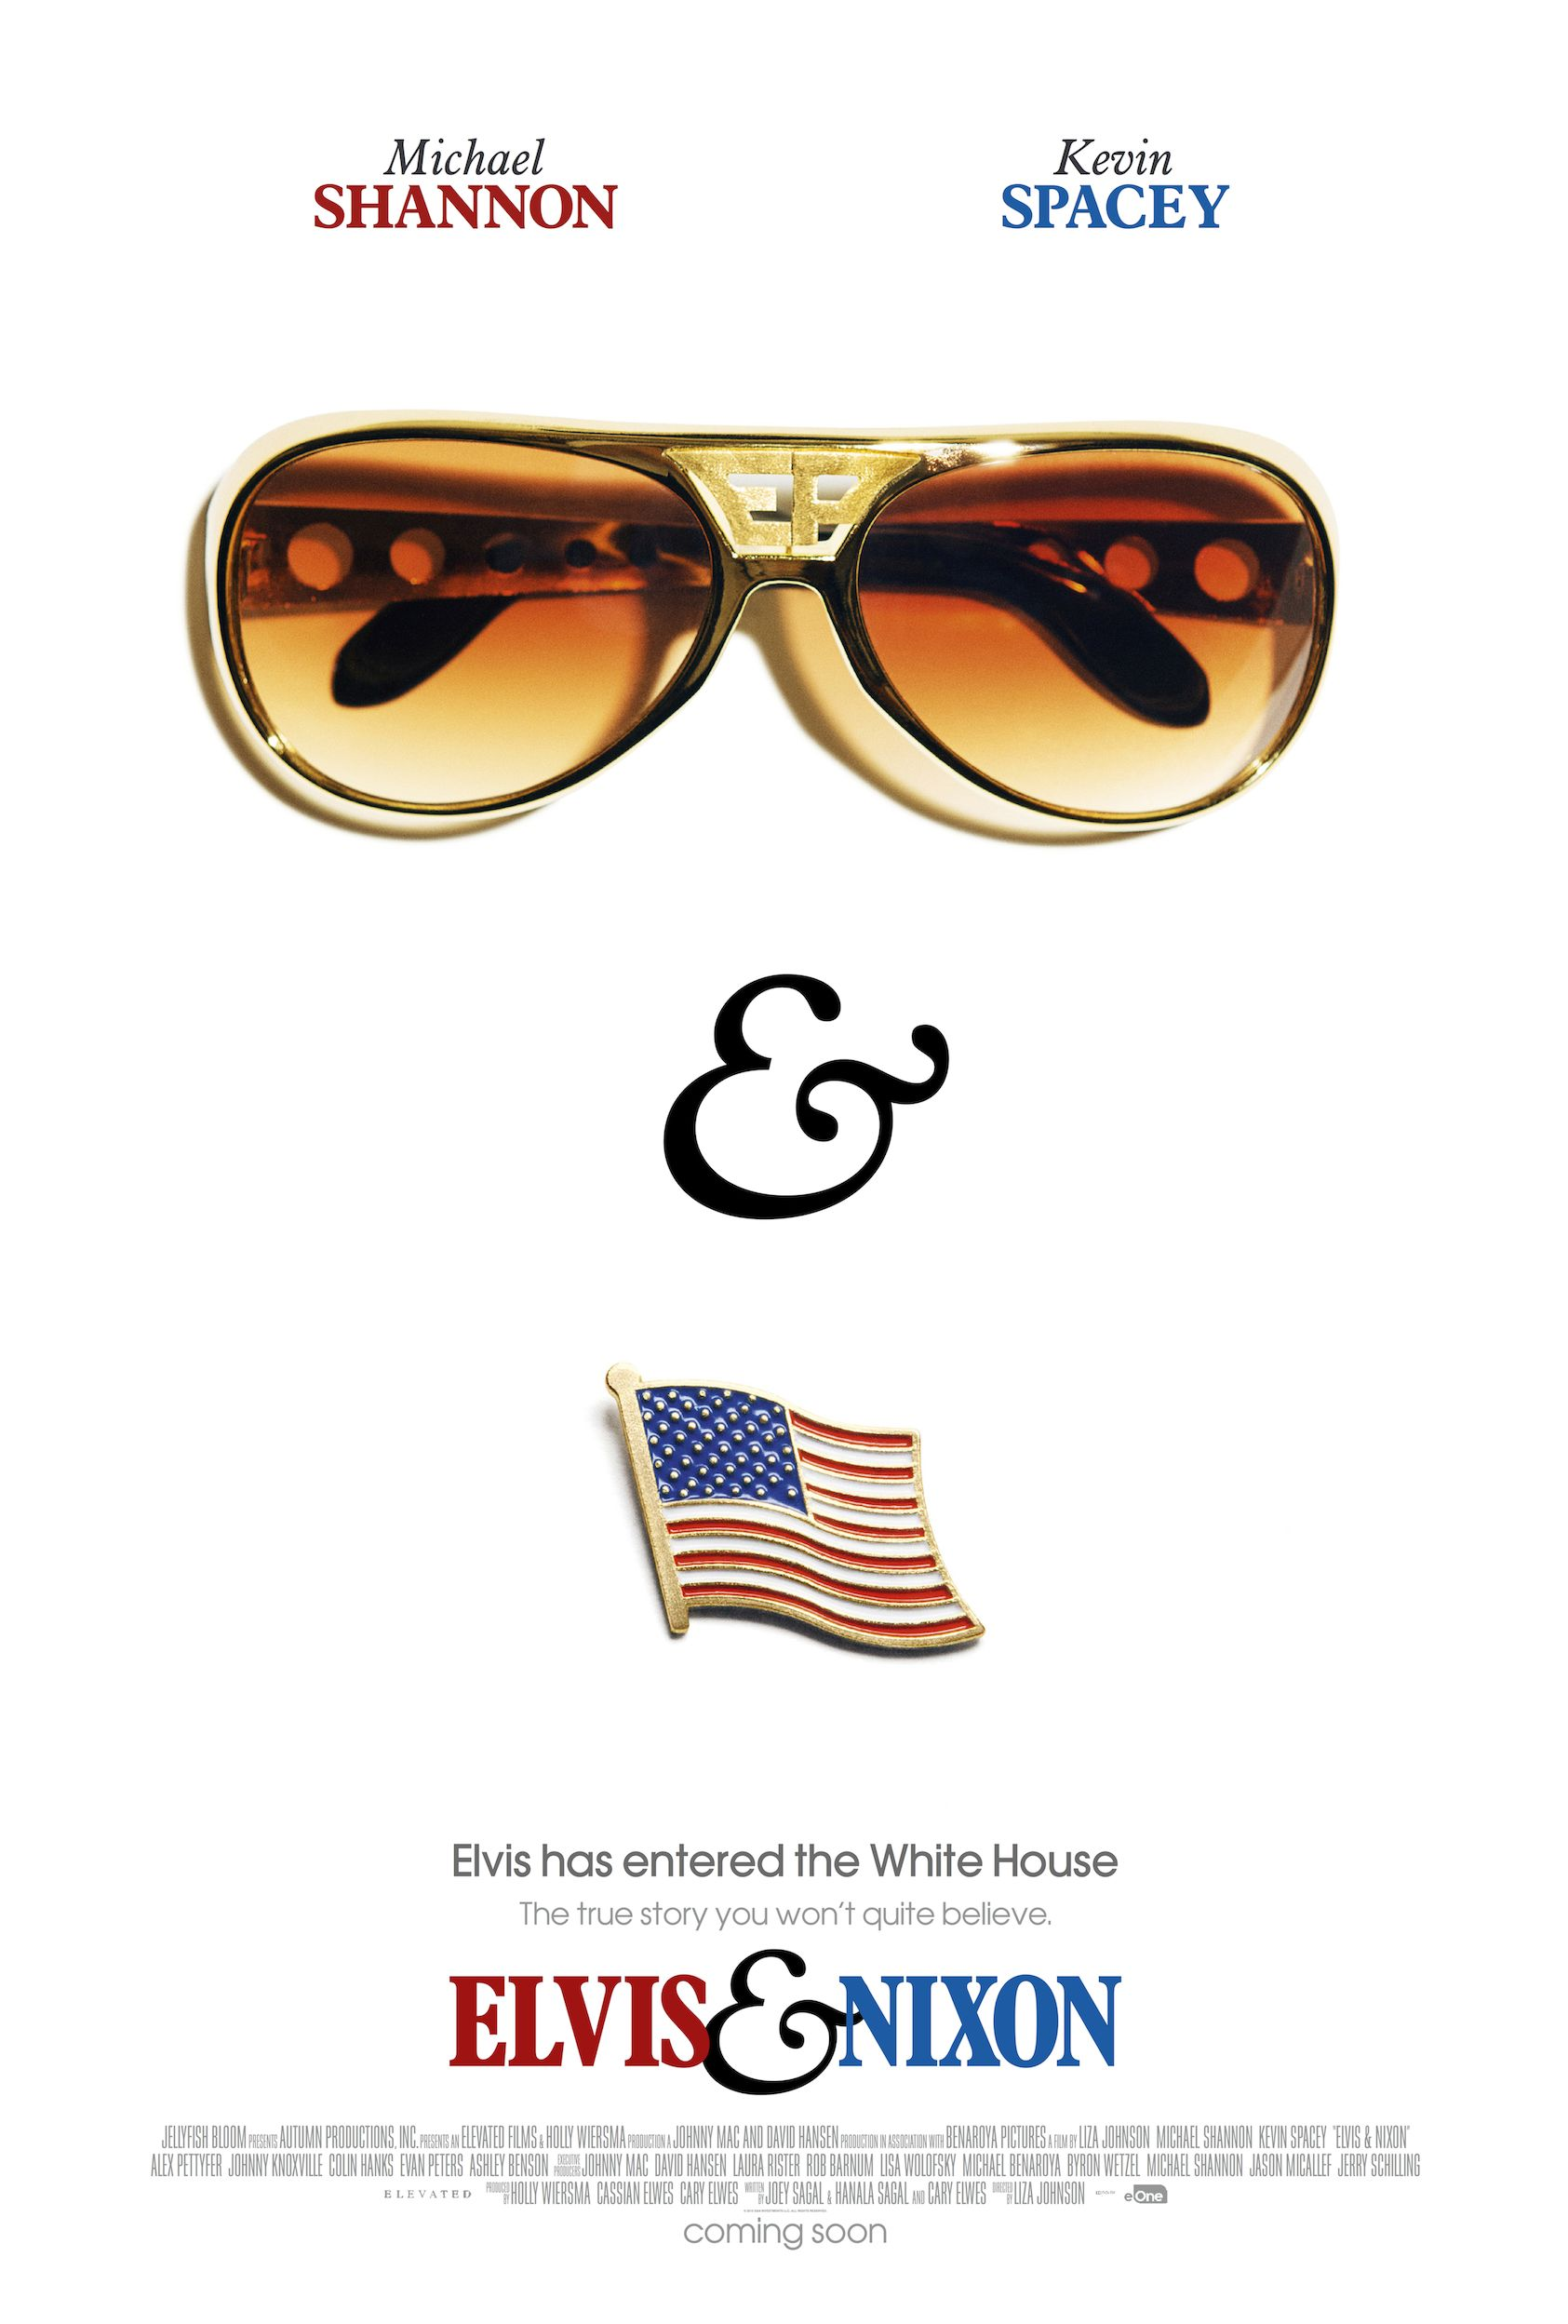 First Teaser Poster for 'Elvis & Nixon' Starring Kevin Space